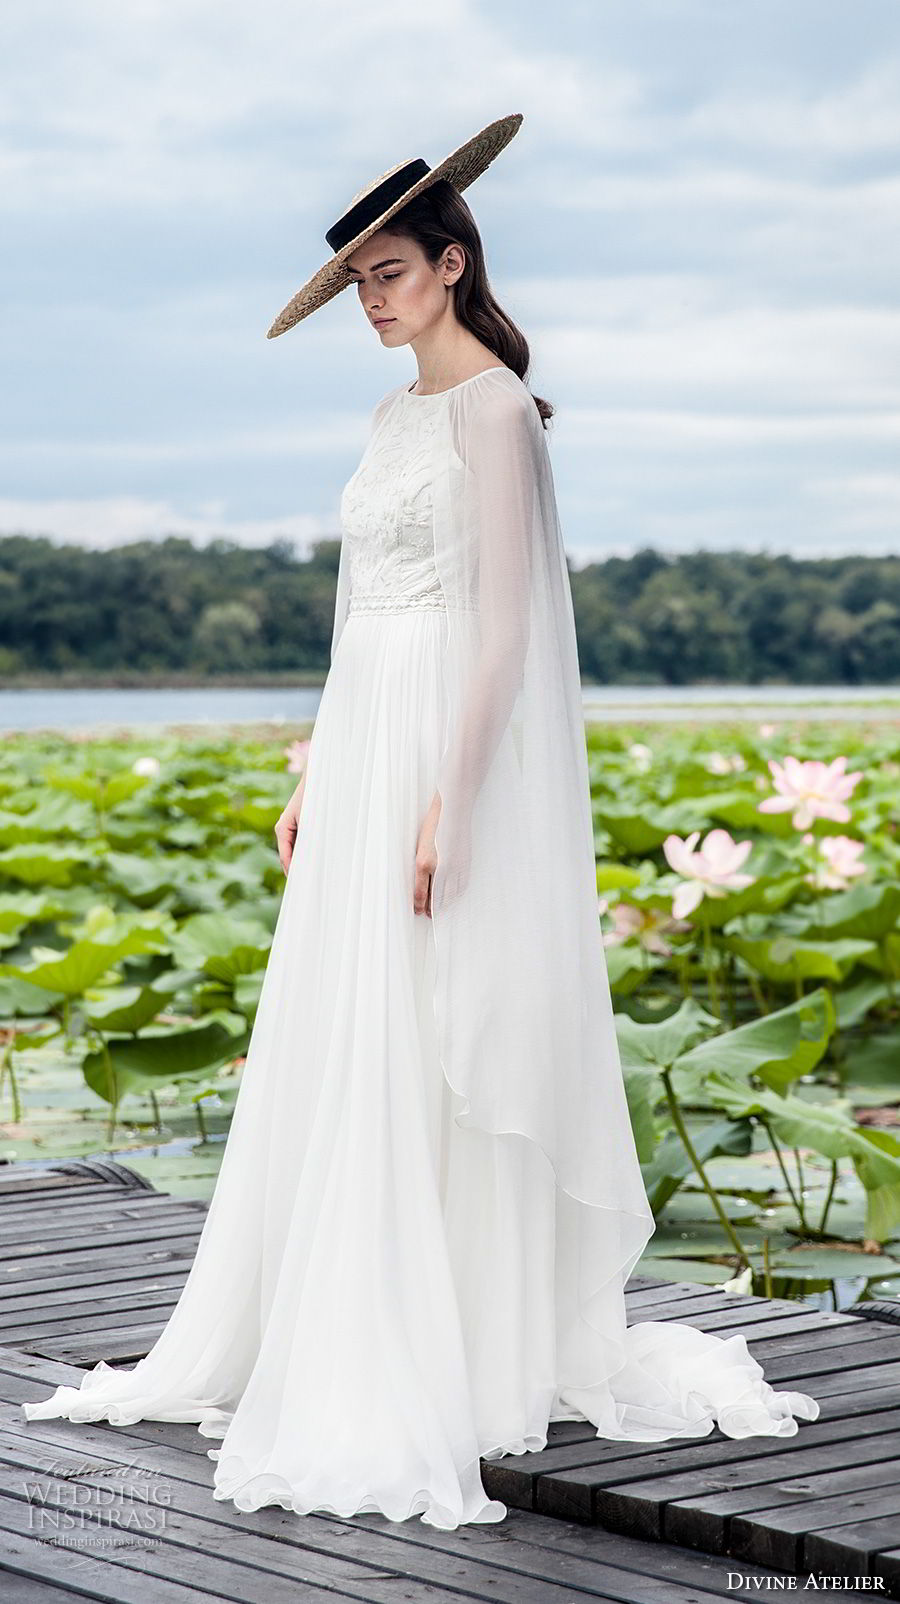 divine atelier 2018 bridal sleeveless halter jewel neck heavily embellished bodice romantic soft a  line wedding dress with cape sweep train (13) mv